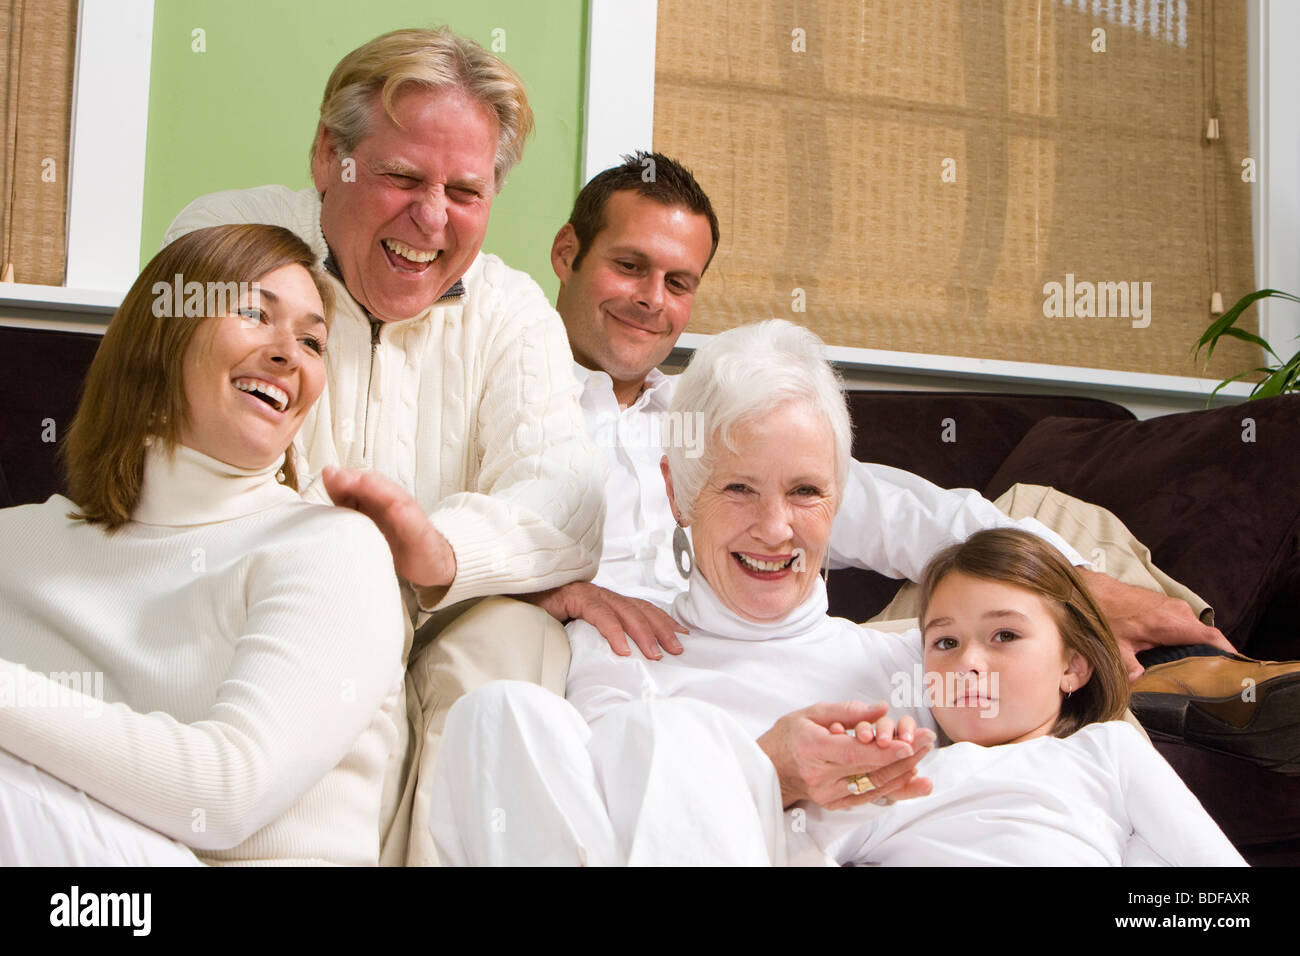 Happy multi-generational family posing in living room - Stock Image